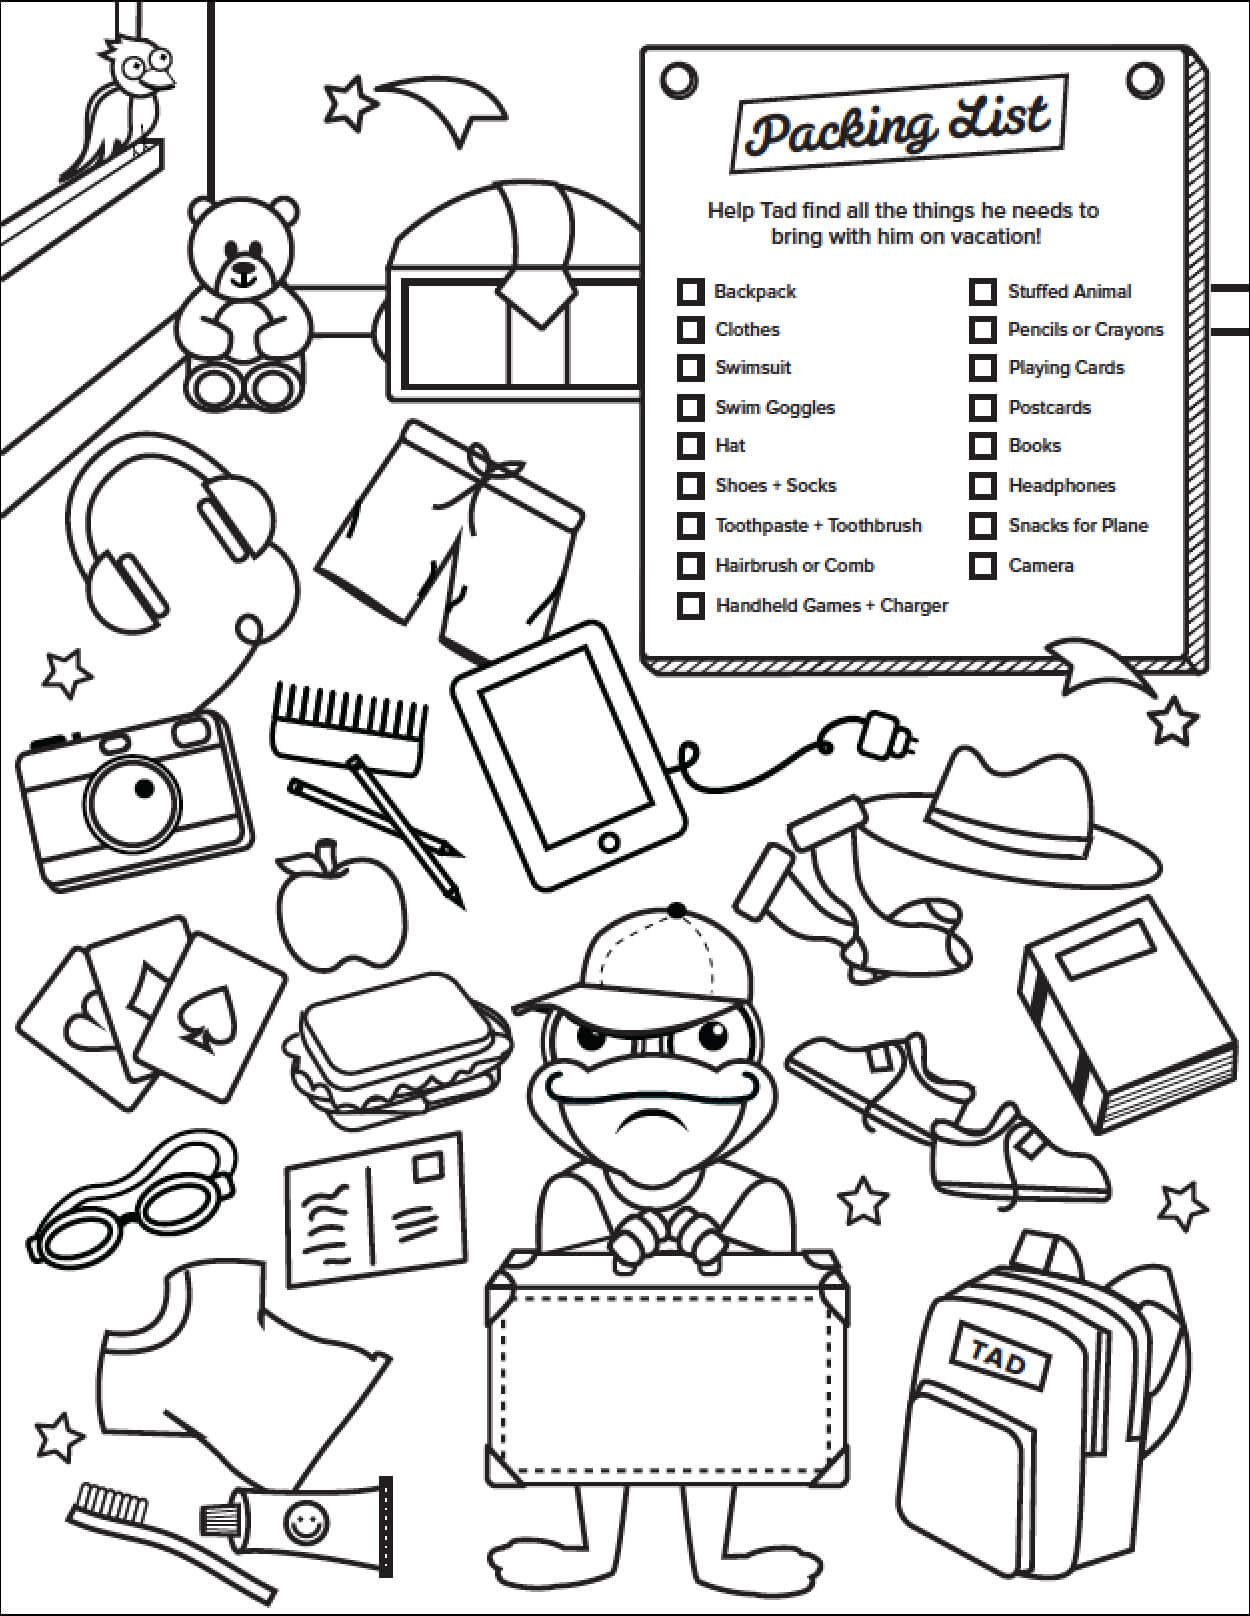 Disney World Holiday Crowds - Coloring Page